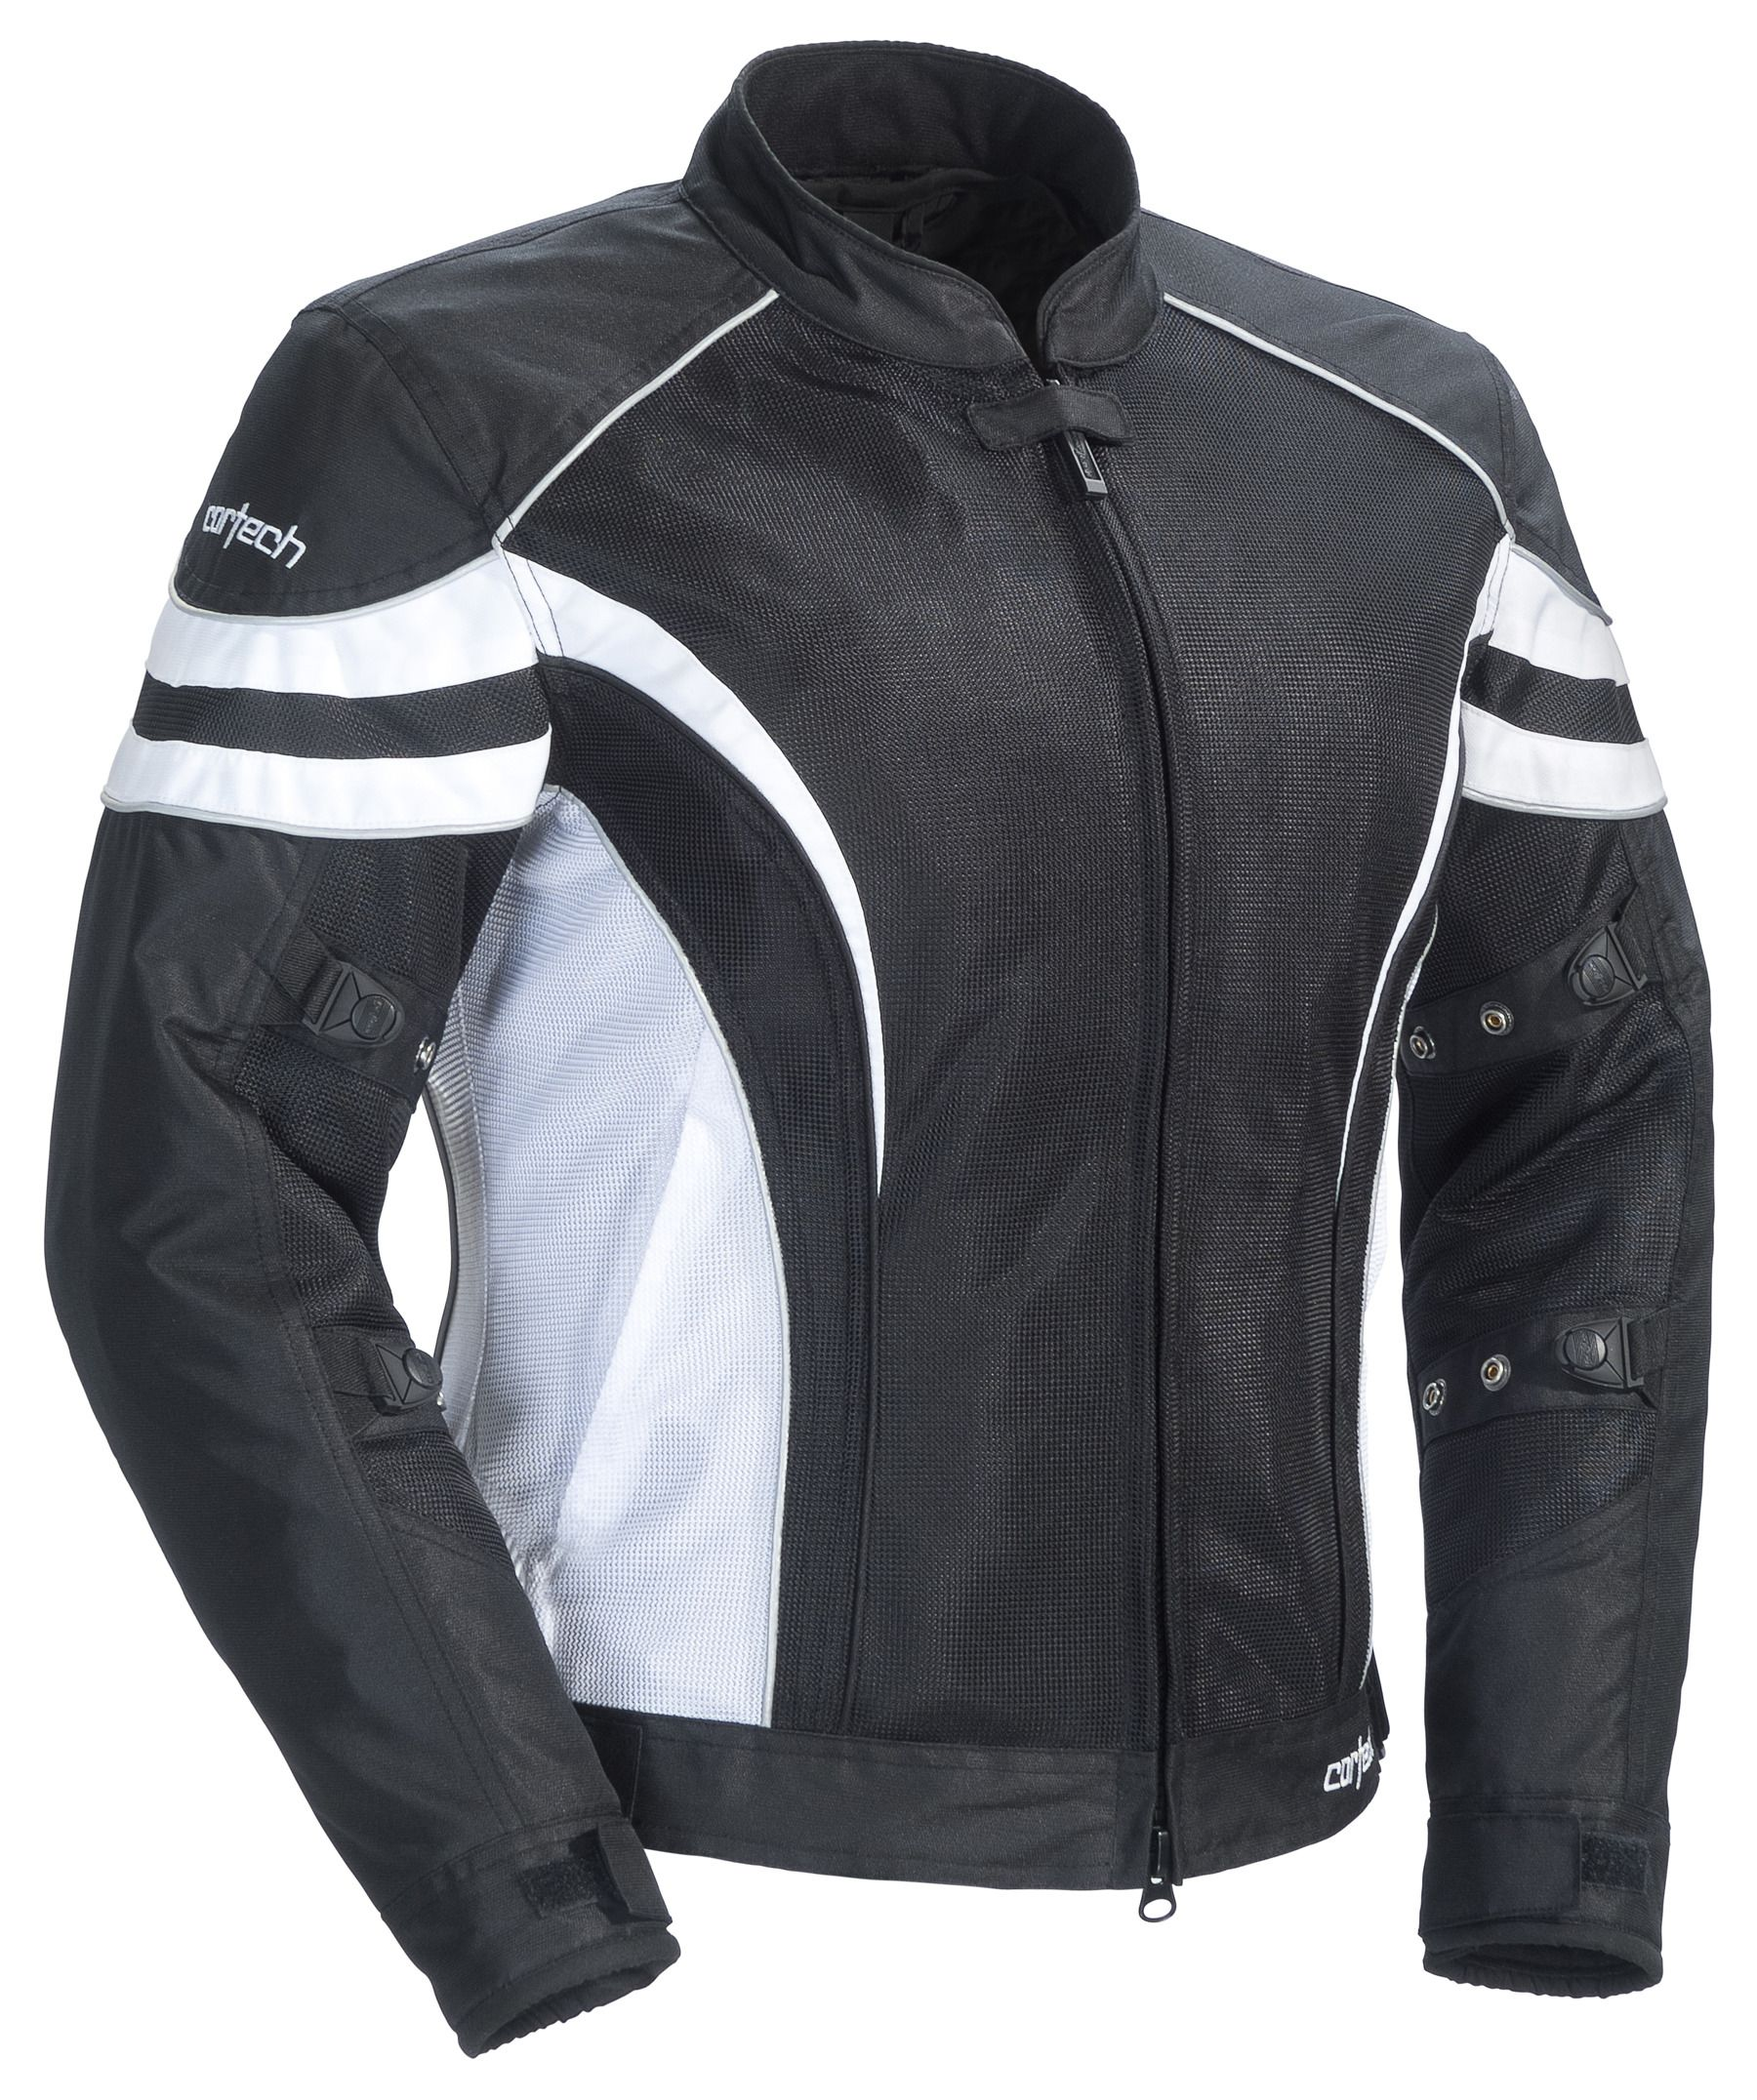 Best motorcycle jackets for women